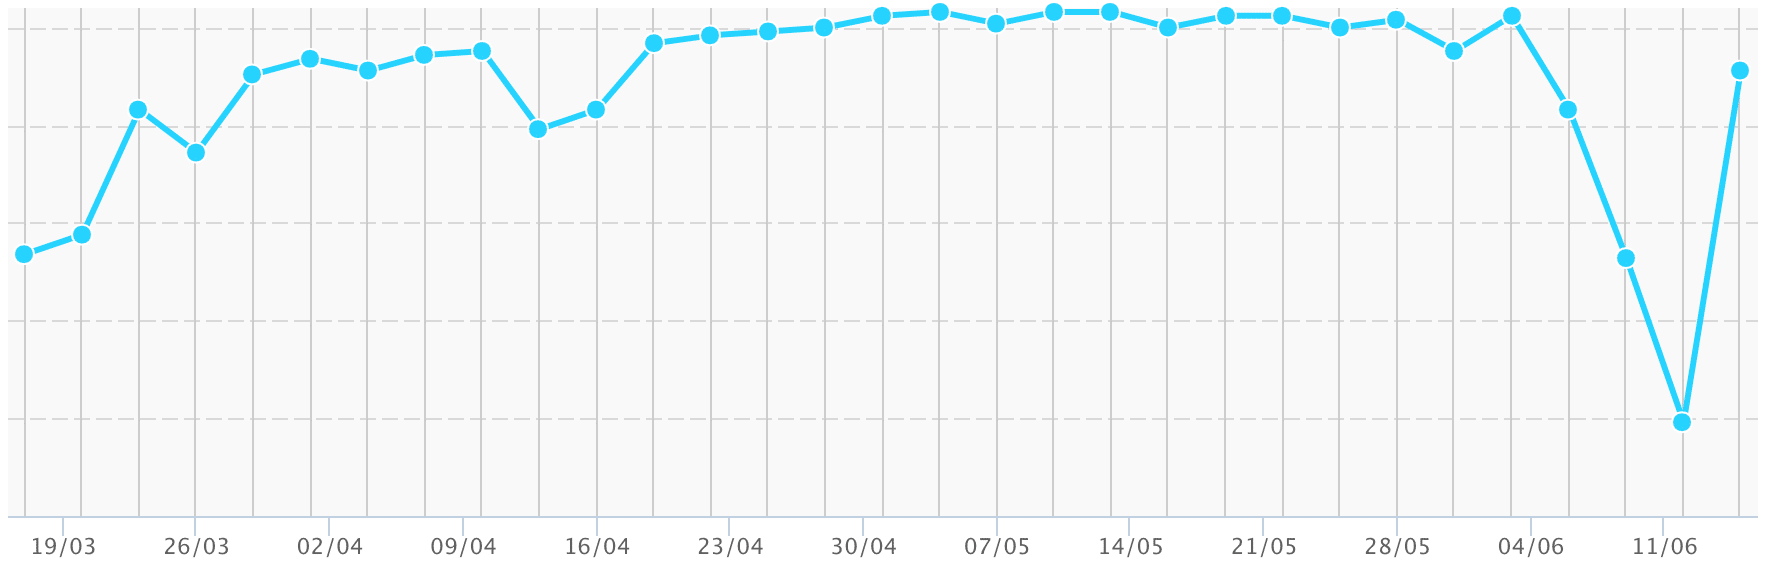 SEO sudden drop and spike in rankings graph